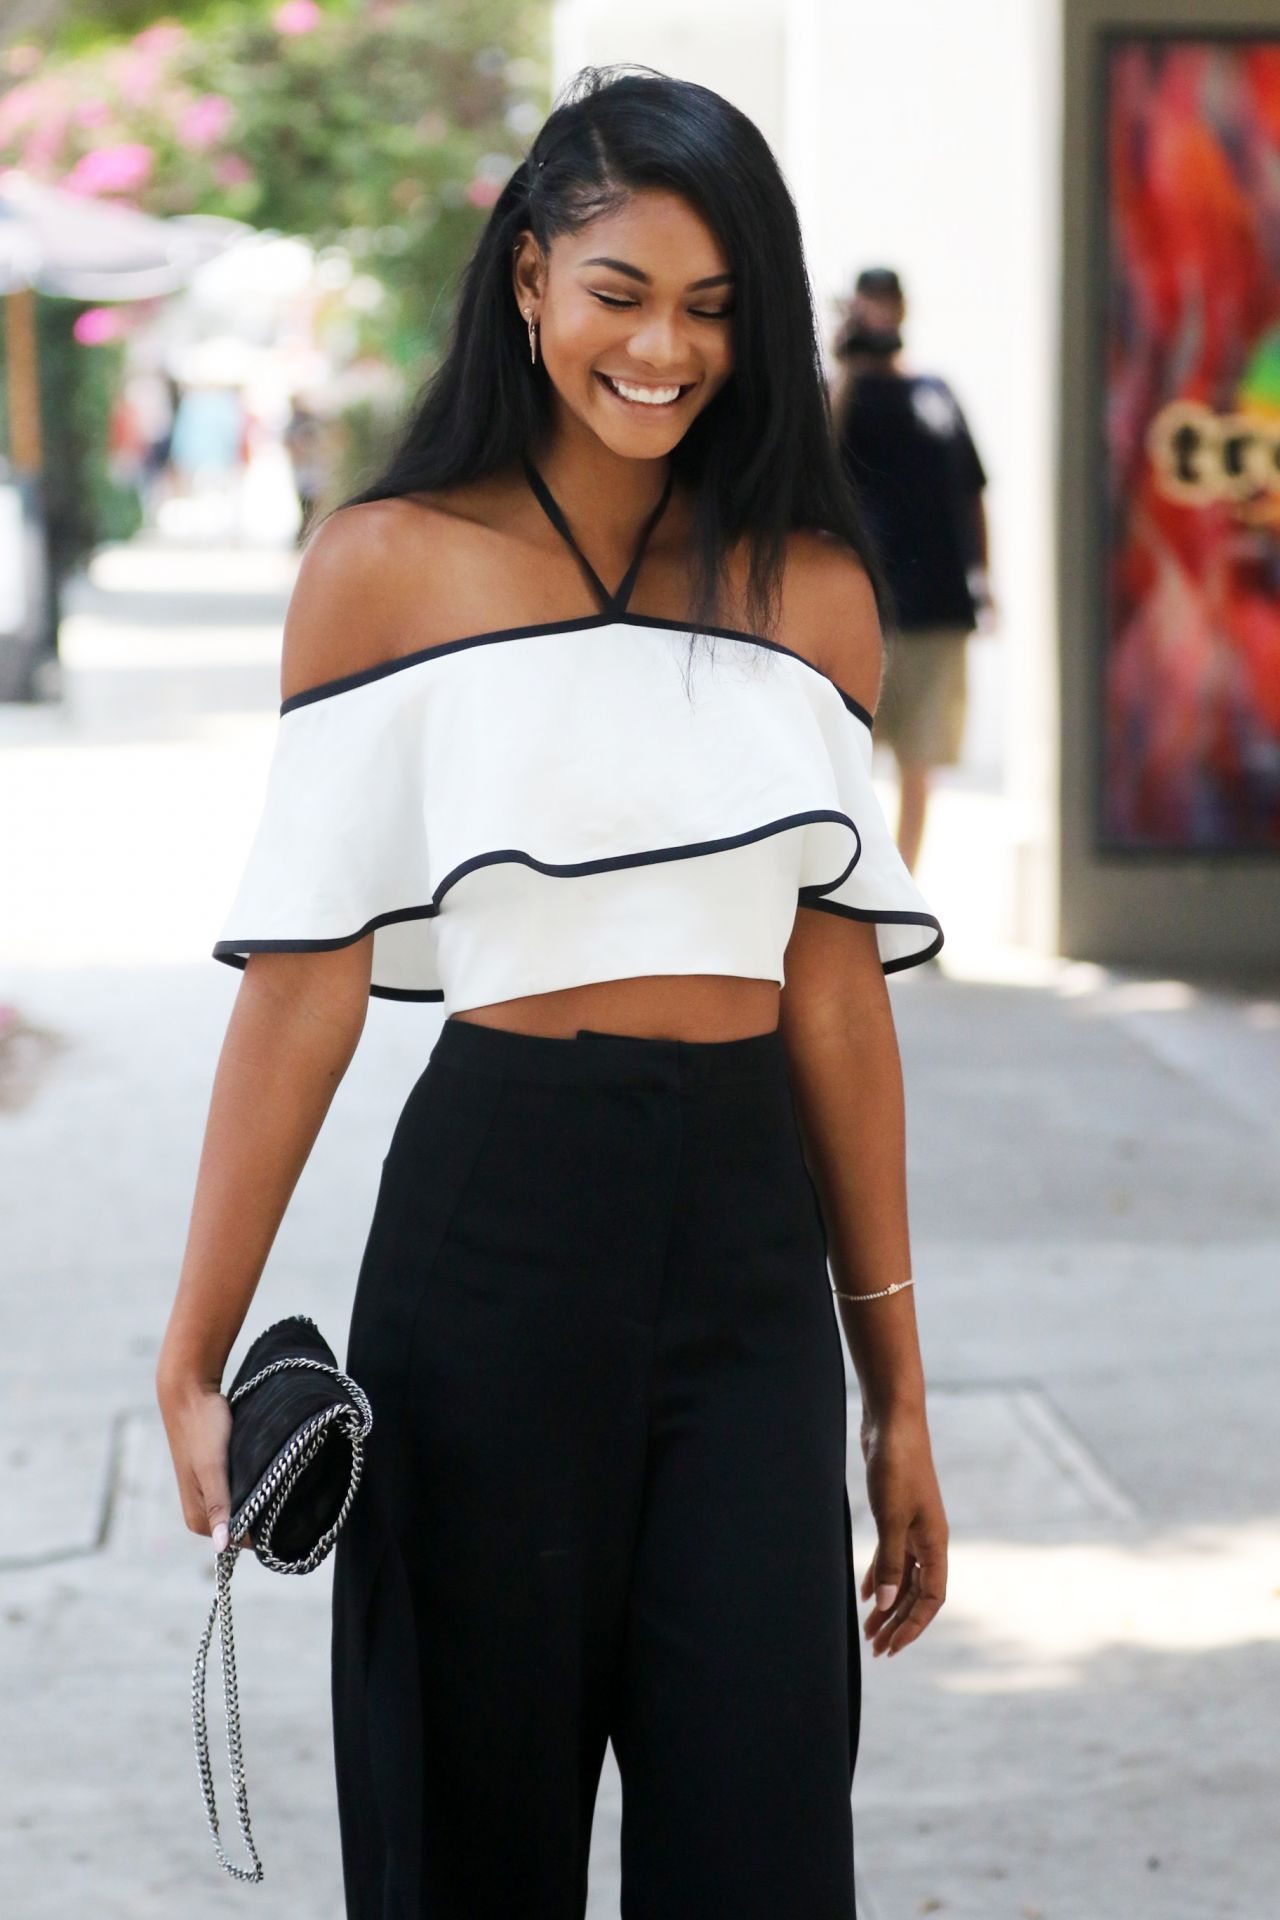 Chanel Iman Style Leaves A Restaurant In West Hollywood